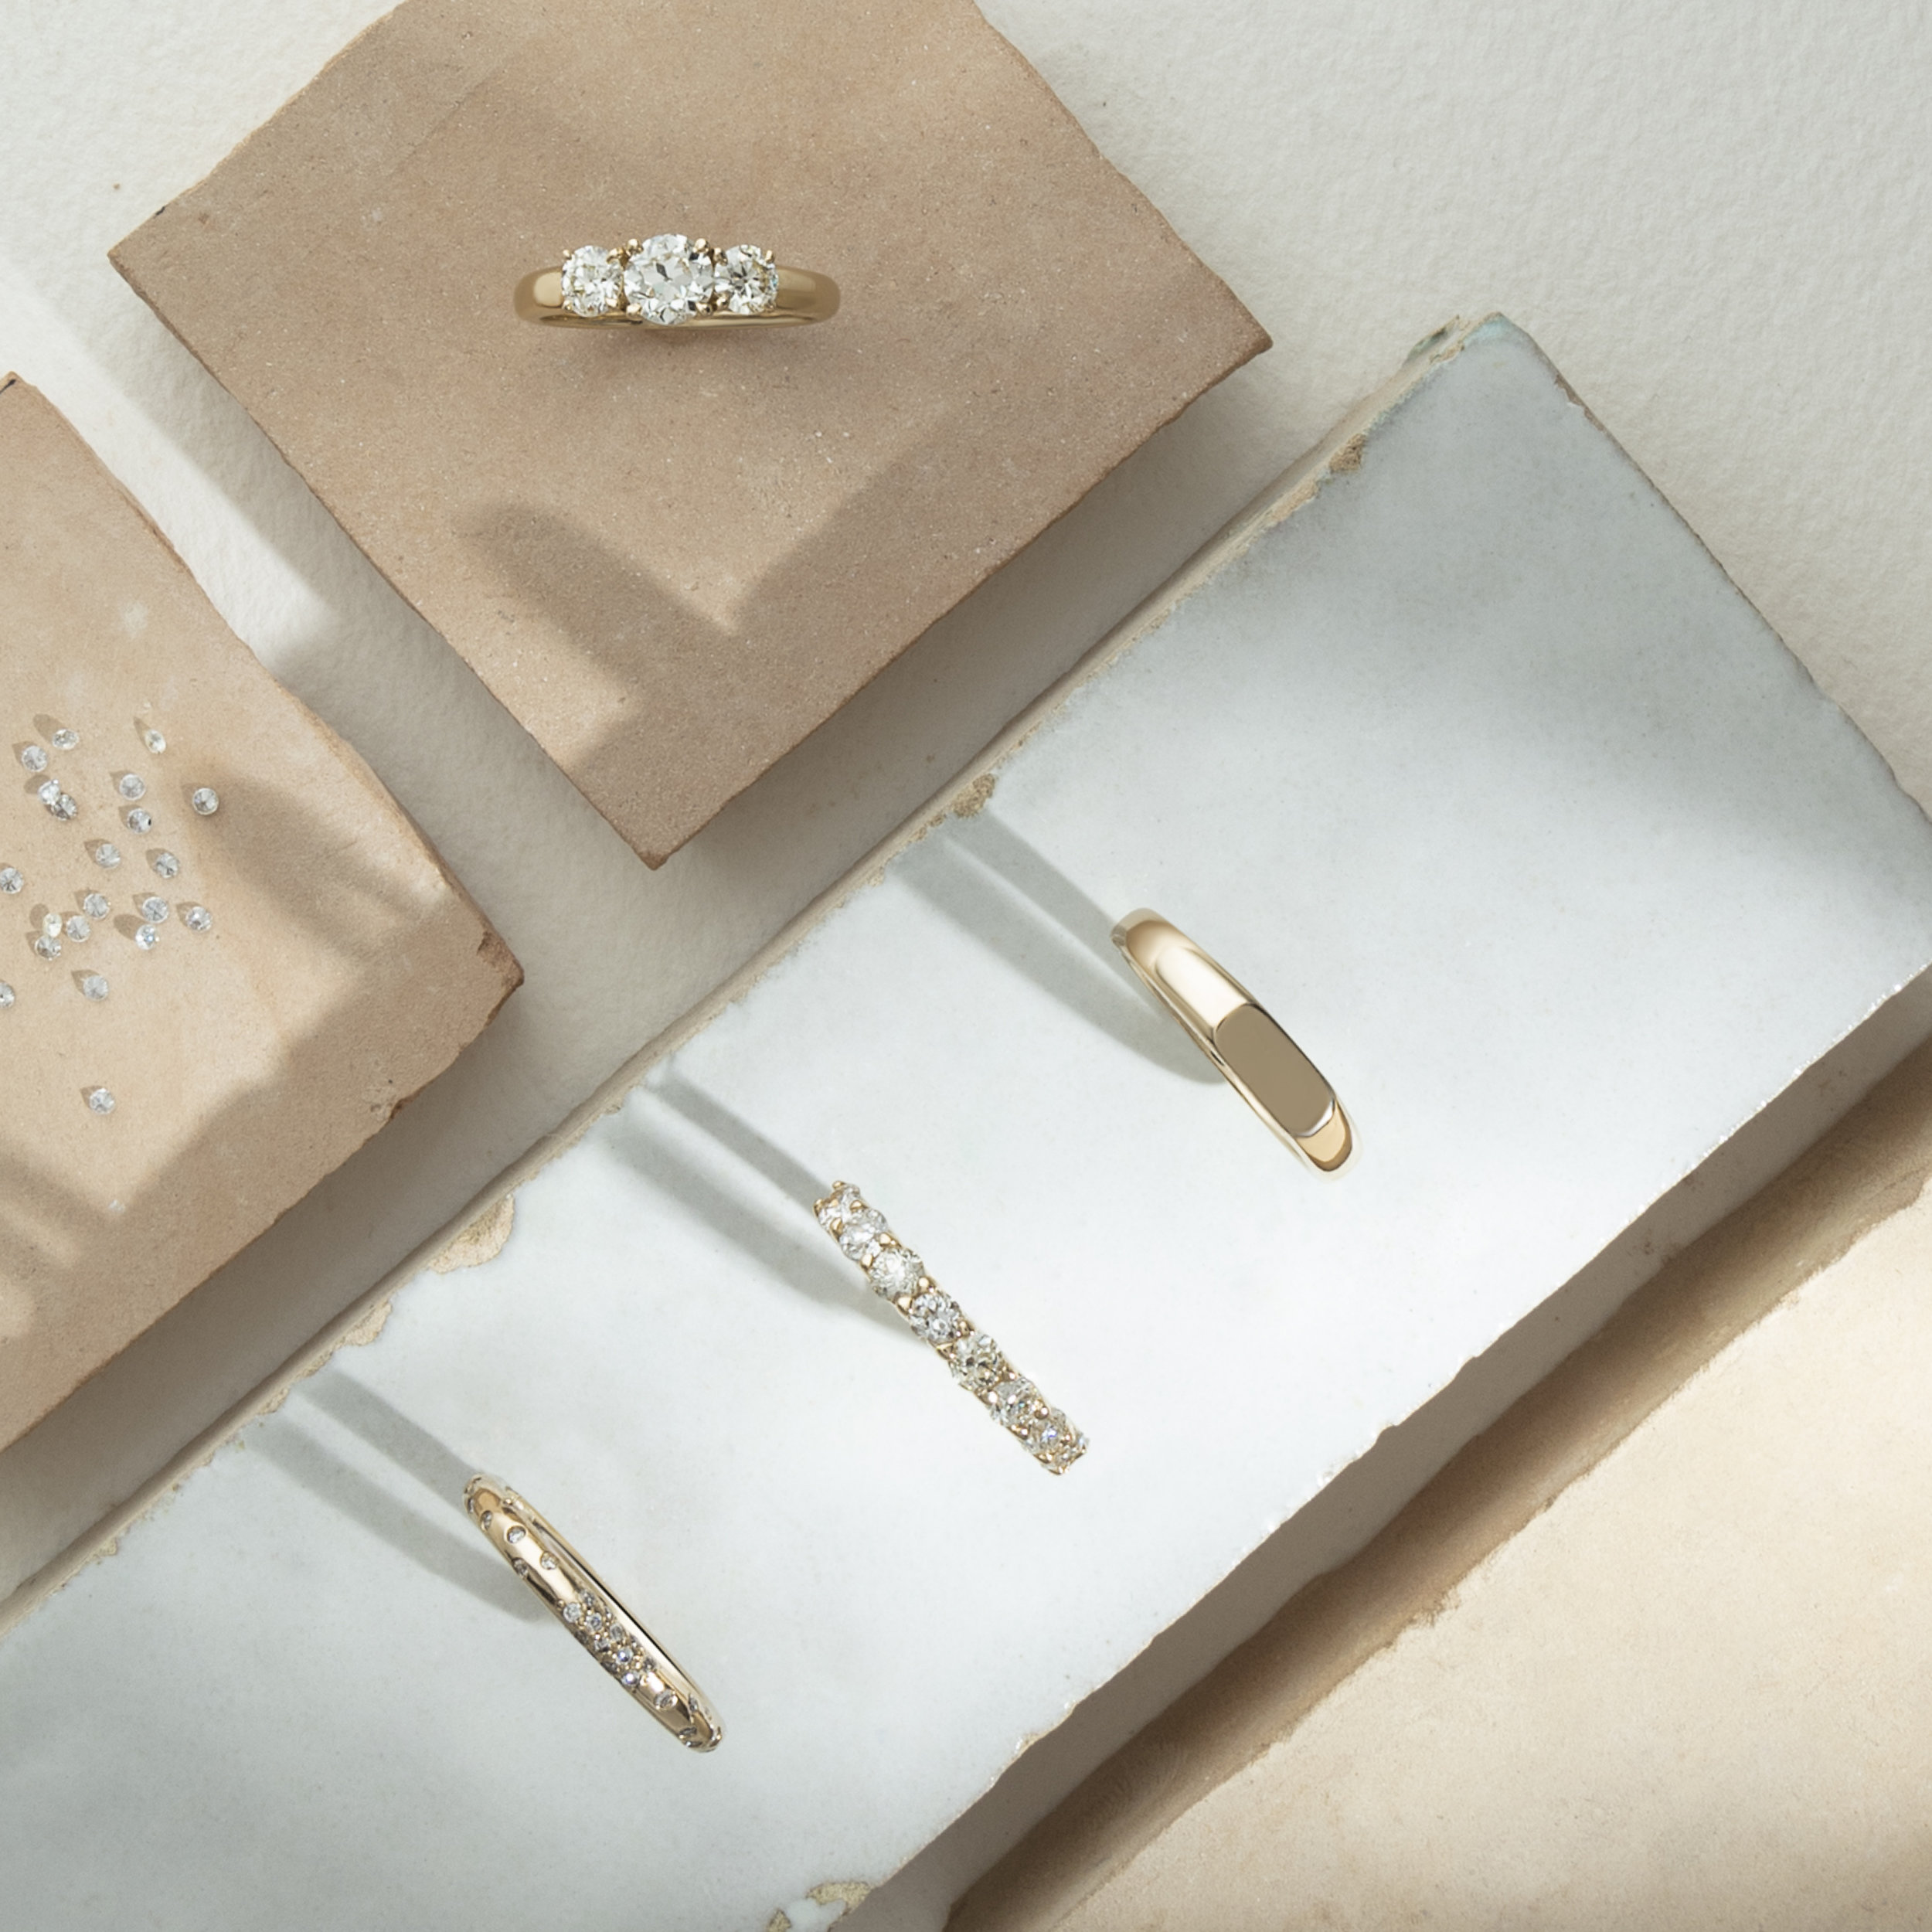 MINIMAL - Minimal and refined, low-key romance anchored in classic design.Appealing to the minimalist aesthete, sculptures of solid, recycled gold set the tone for the collection. Geometric design so simple it feels classic, while the twist, a personal edit of responsibly sourced, hand-cut, and reclaimed fine gems are accented by an asymmetric wash of pavé diamonds that capture and reflect light.— sure to catch only the good sort of attention.